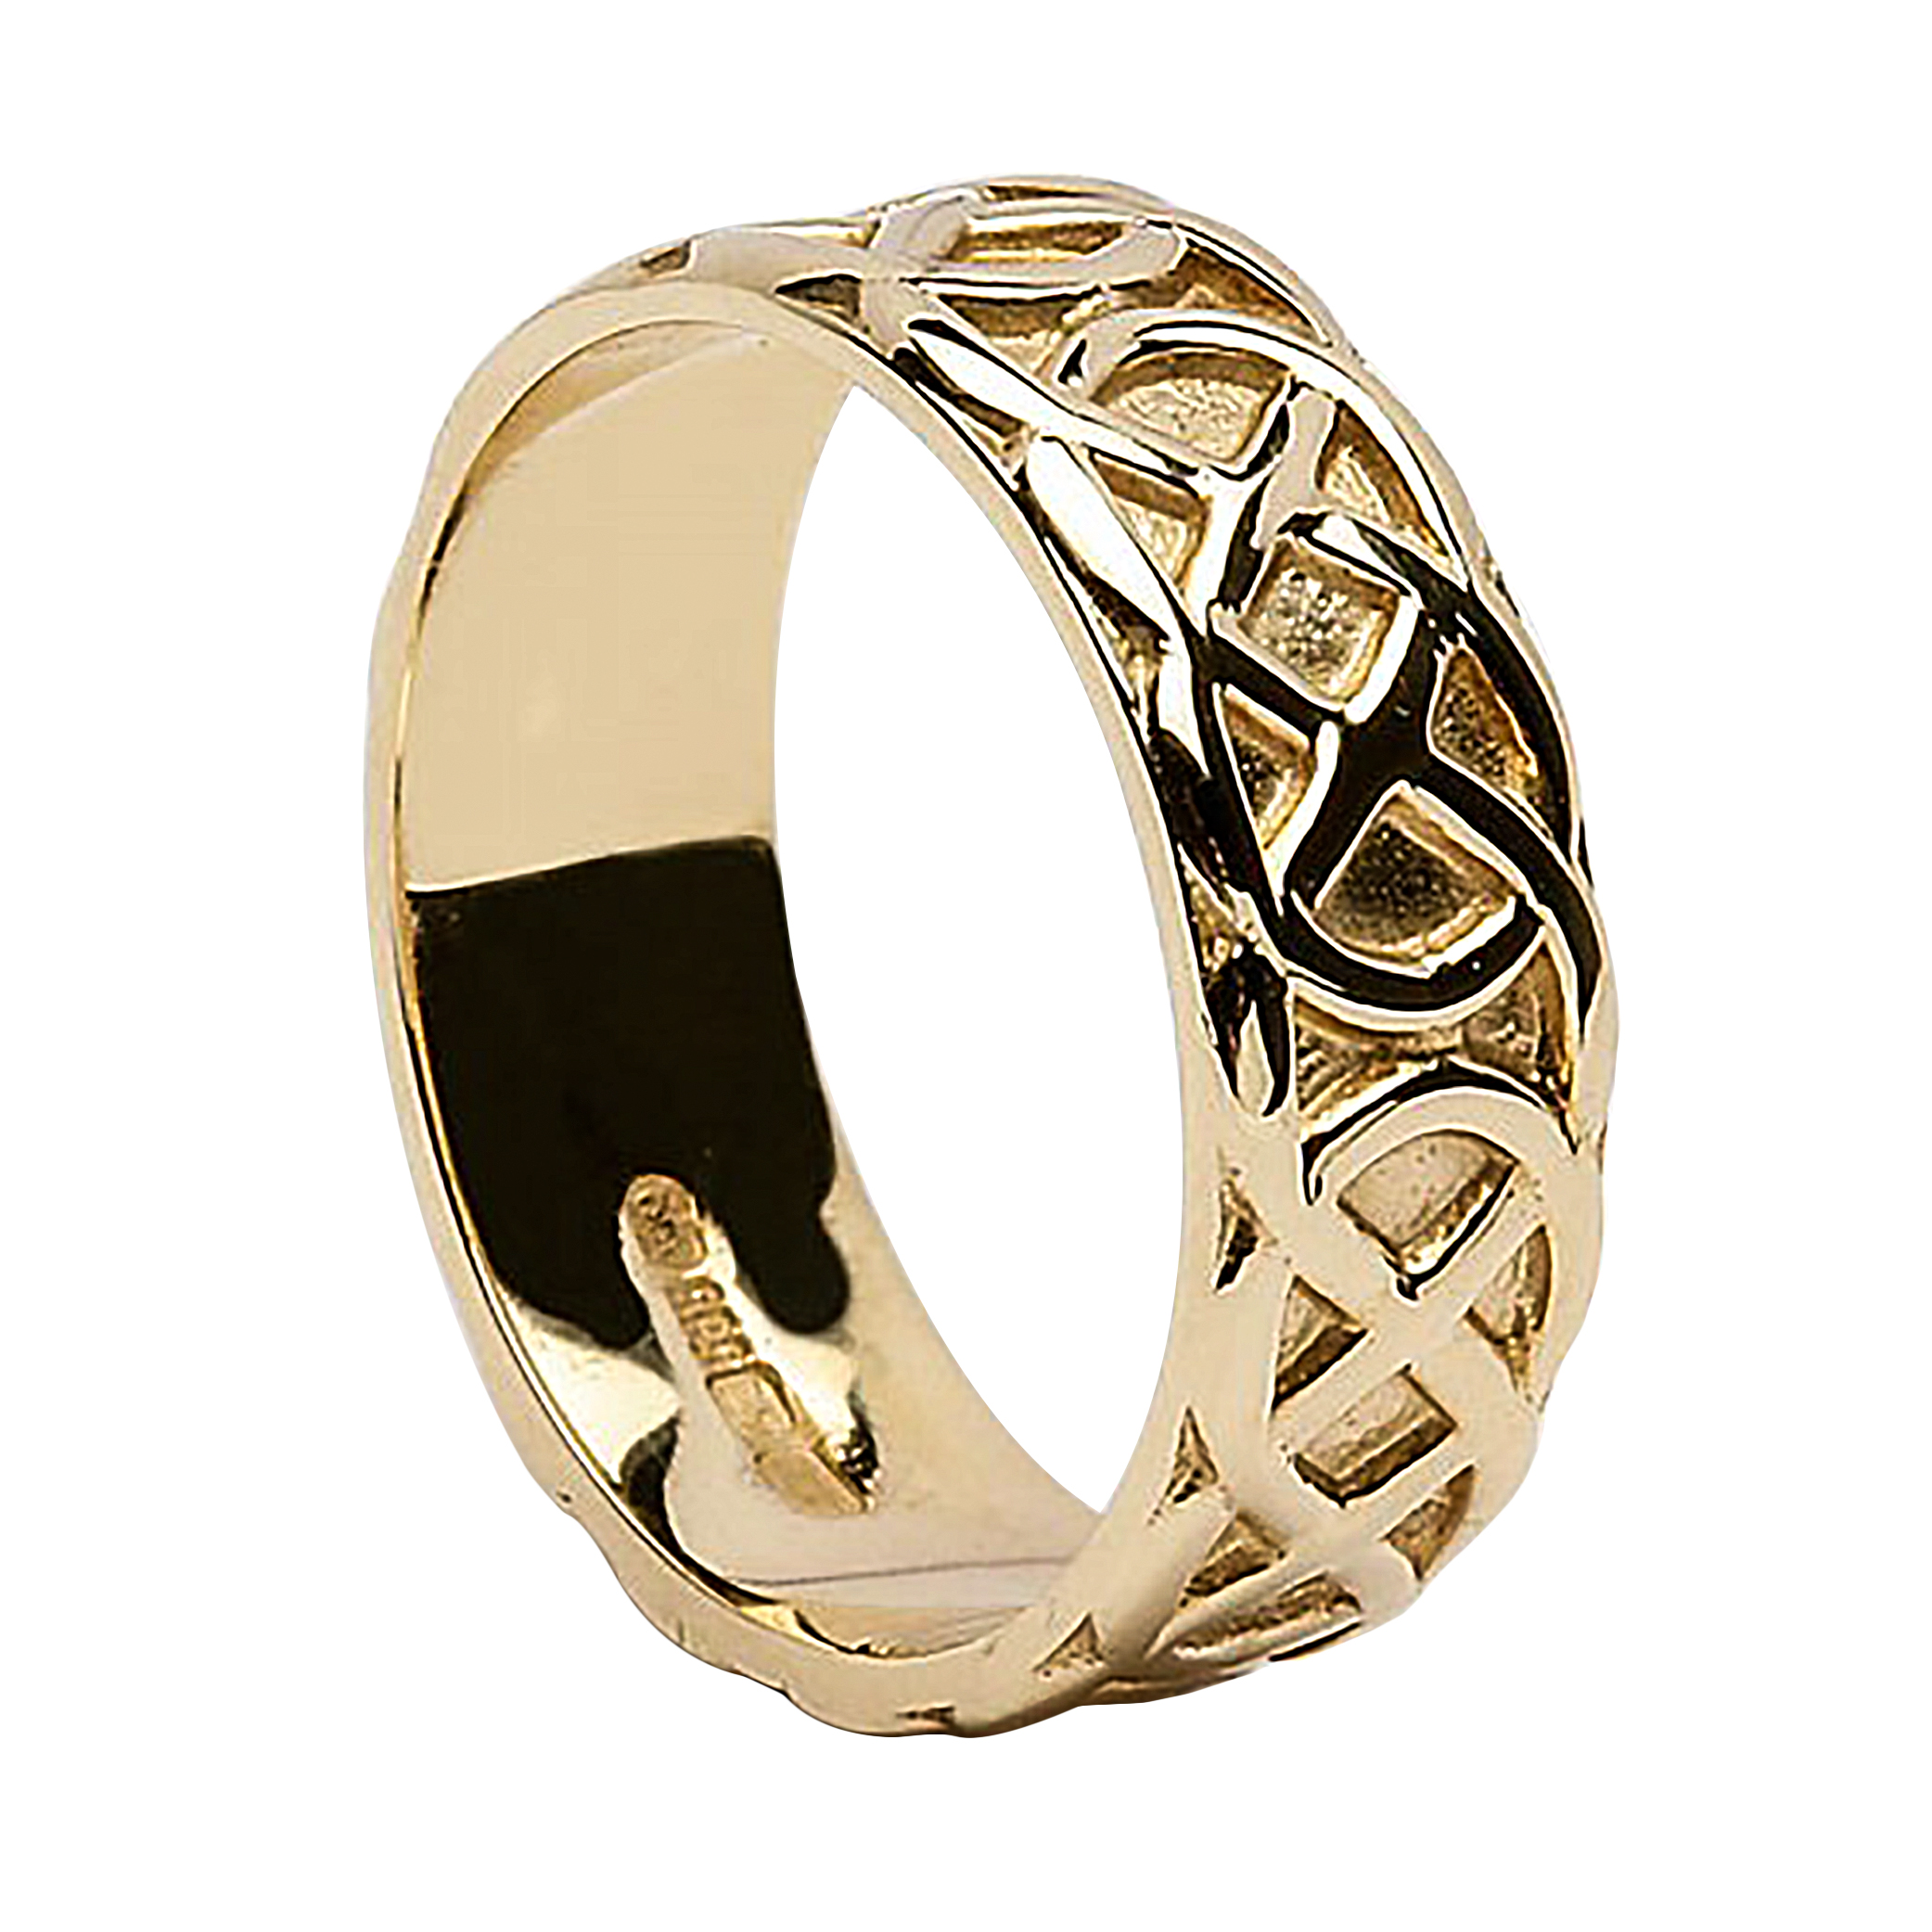 steel on jewelry product s watches mens cross orders stainless ring shipping free wedding spinner overstock rings celtic over men